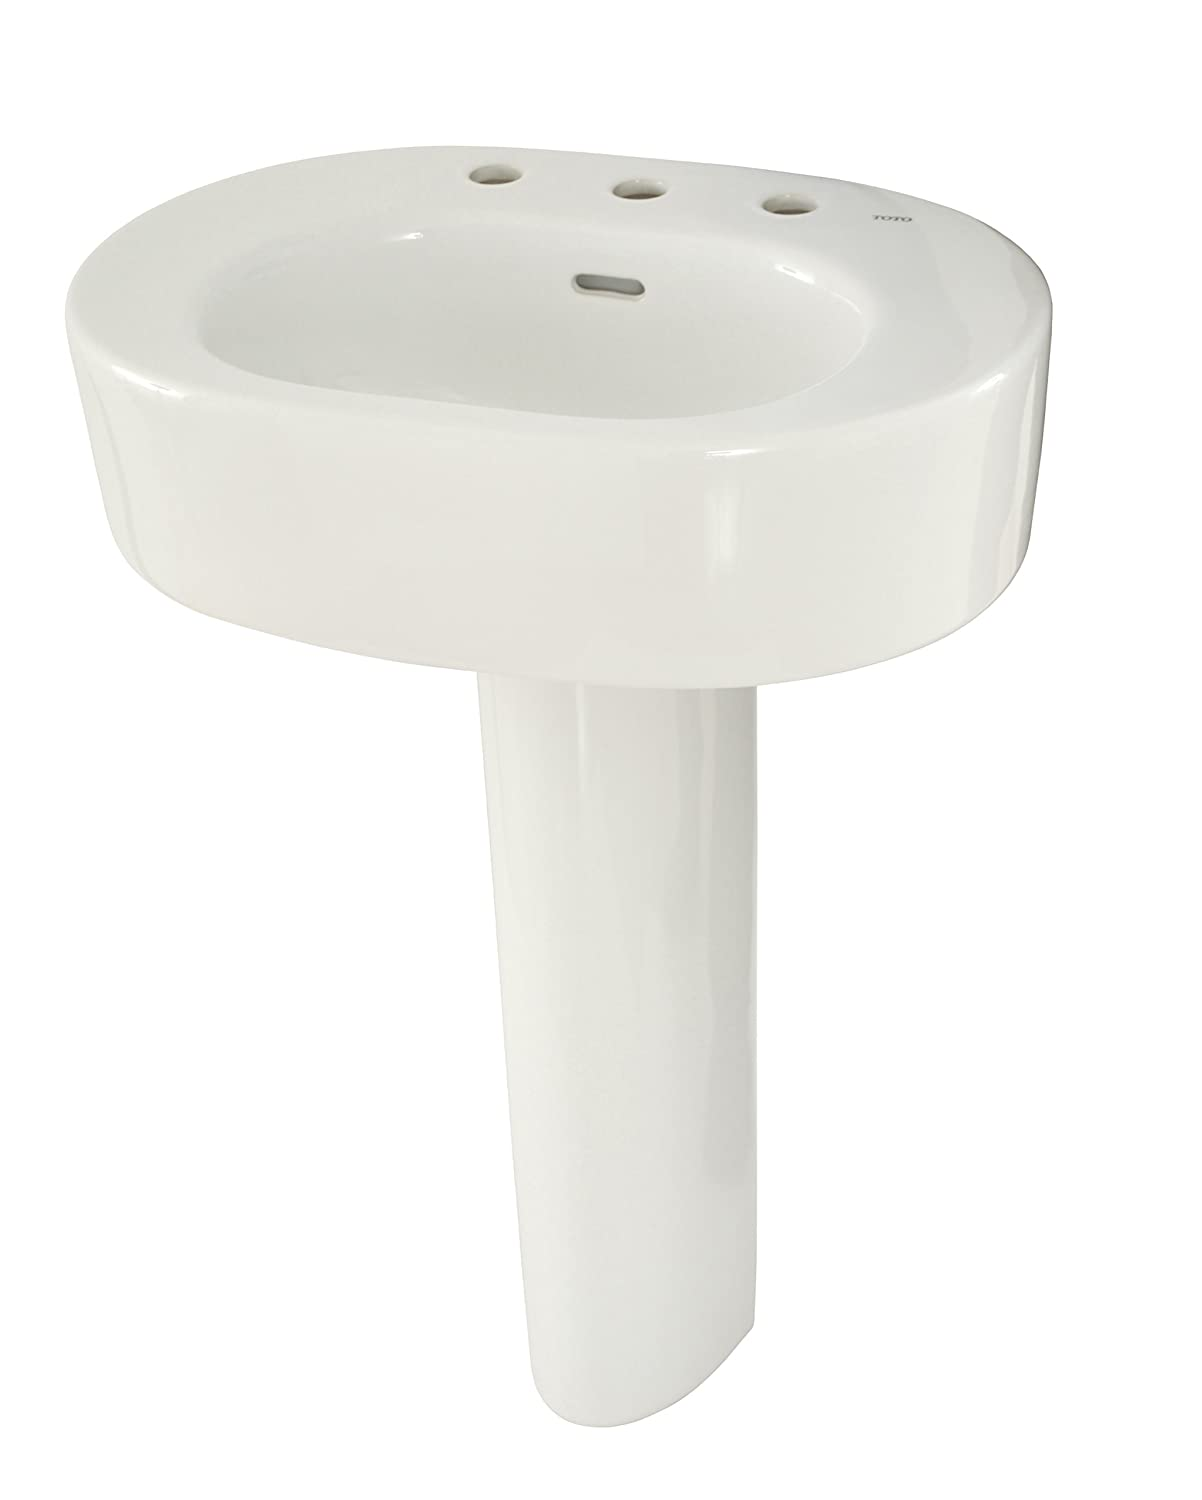 TOTO LPT790.8#01 Nexus Lavatory and Pedestal with 8-Inch Centers ...